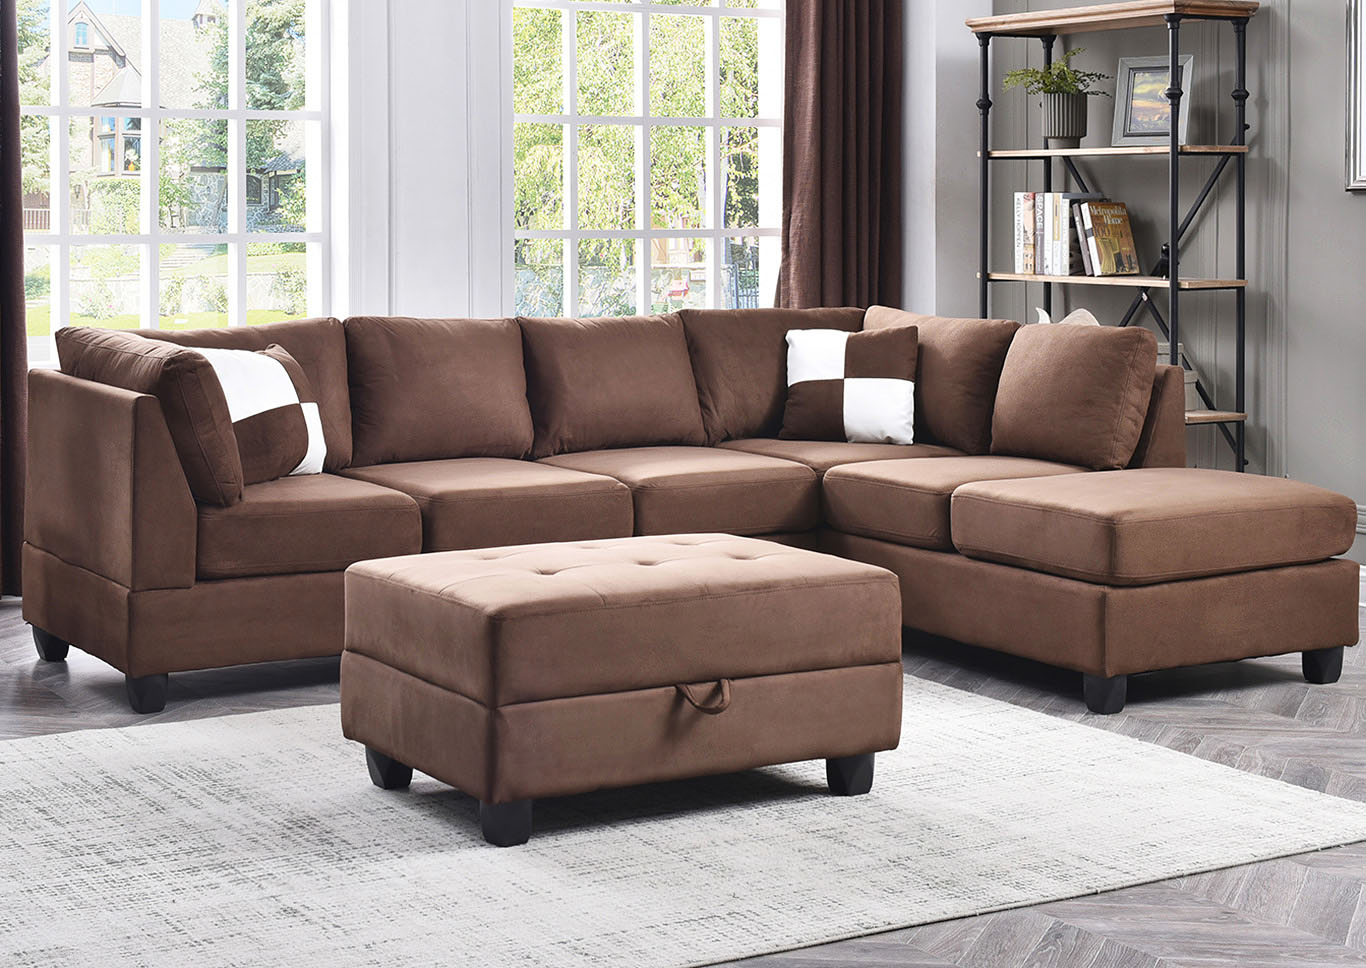 Chocolate Suede Sectional,Glory Furniture